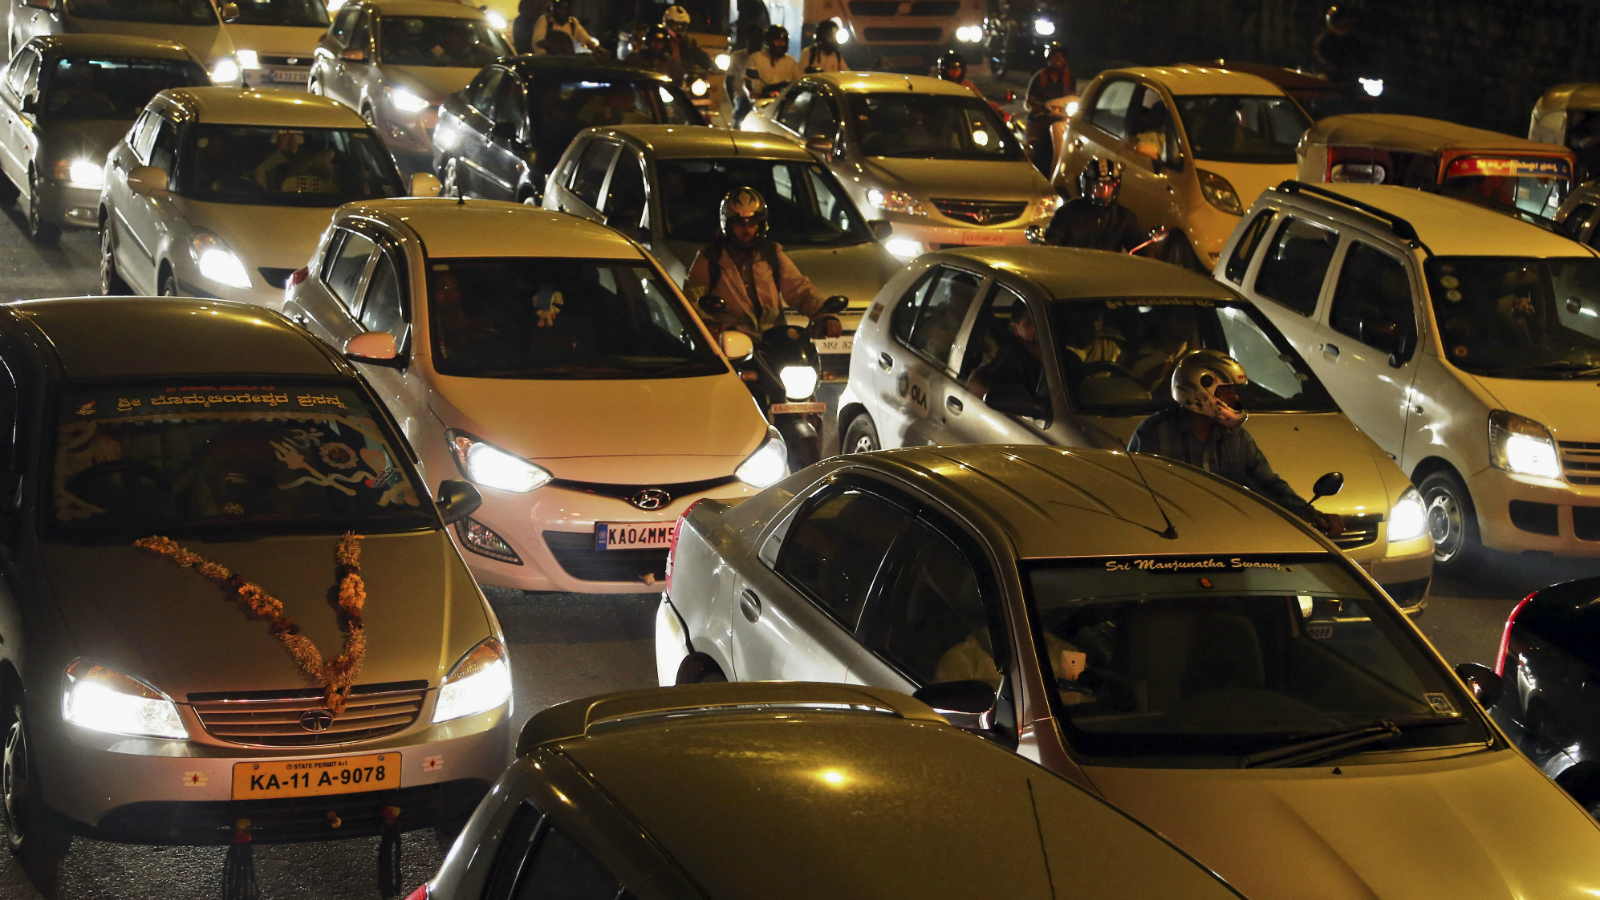 Stuck in Bengaluru's insane traffic, Uber and Ola drivers